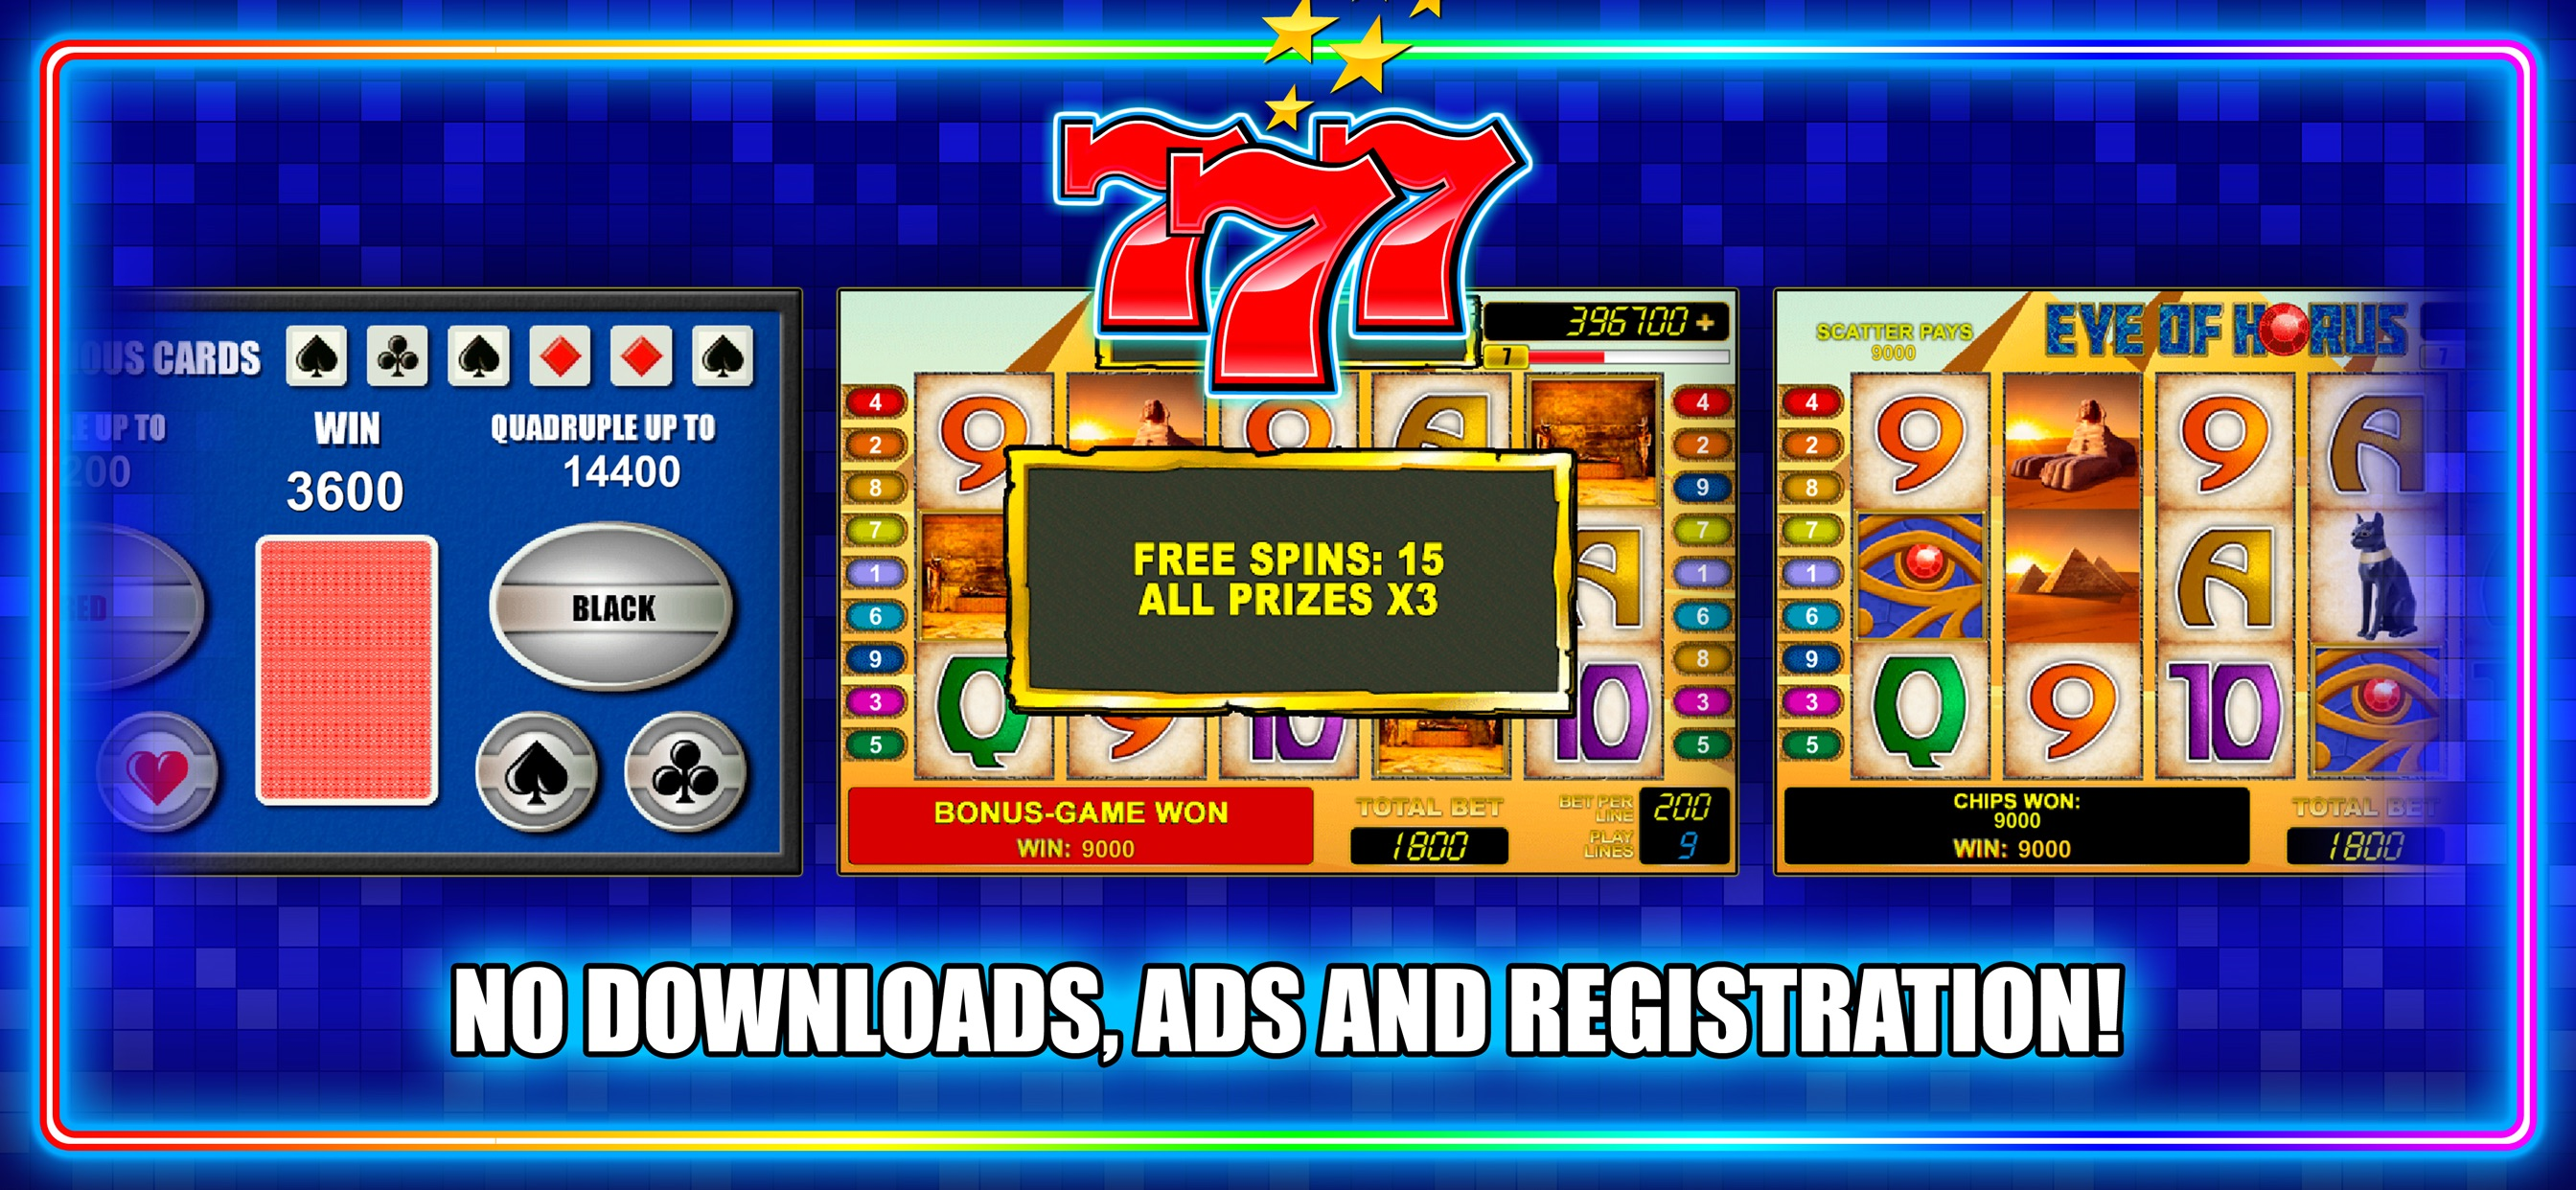 Ultimate sounds construction cash slot machine online multislot keno jackpots